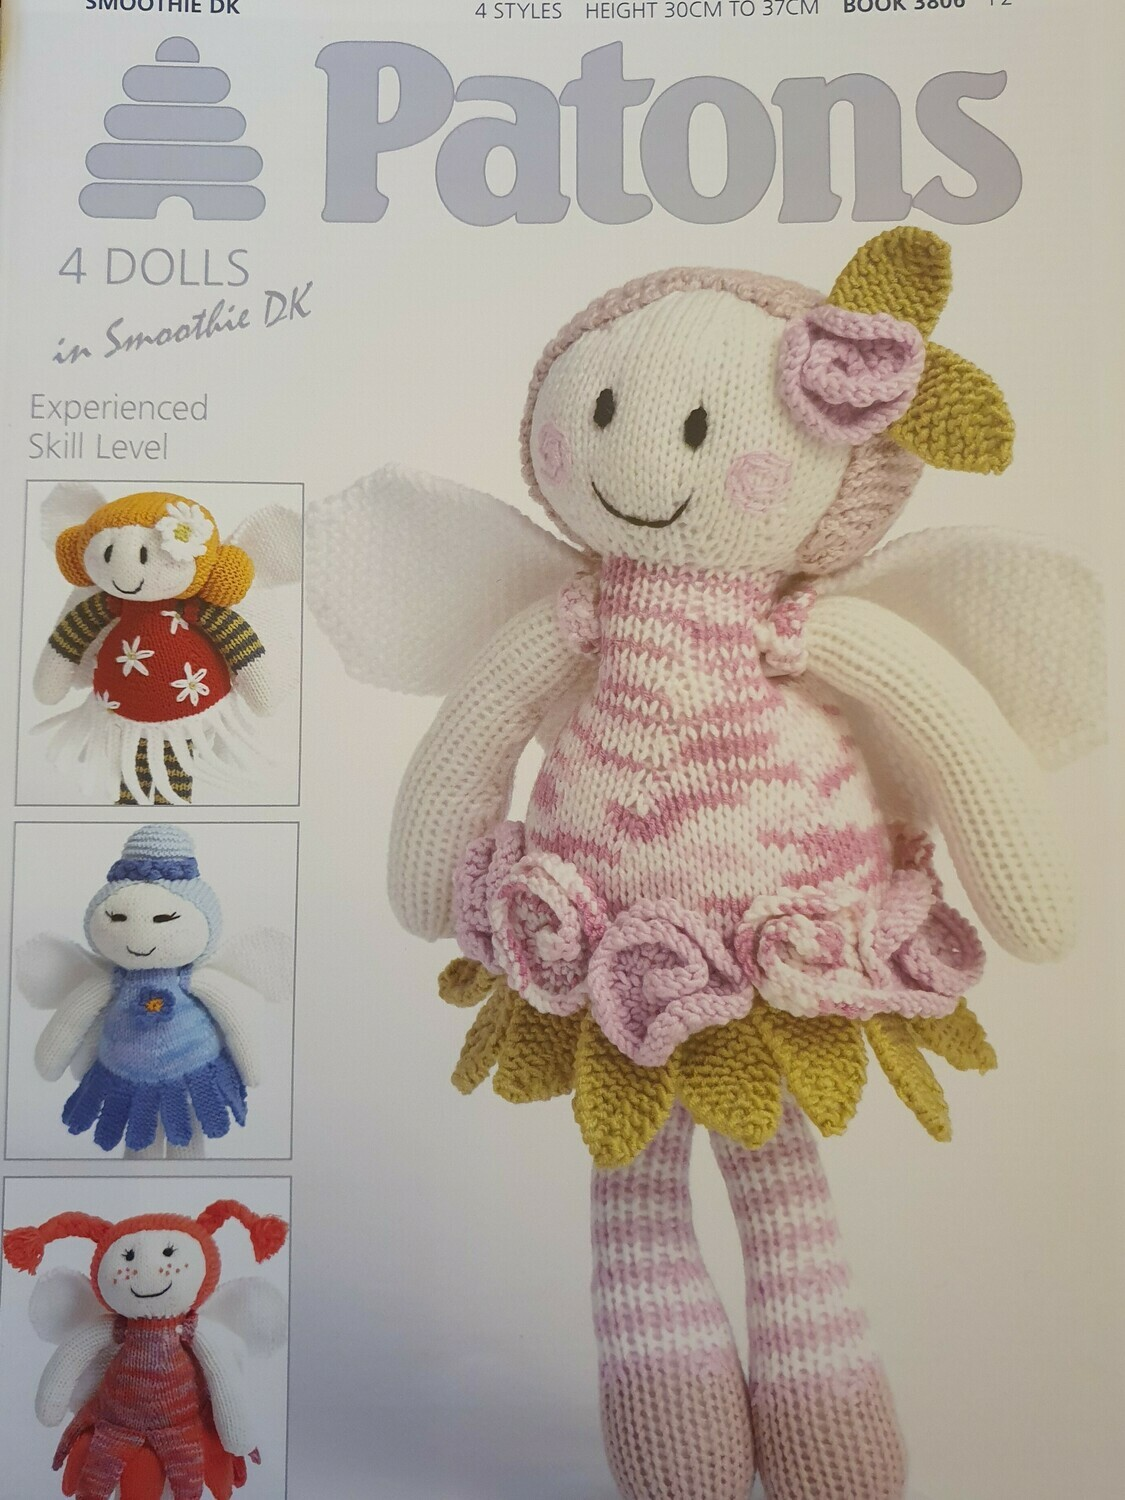 Smoothie DK: Fairy Dolls pattern book by Patons